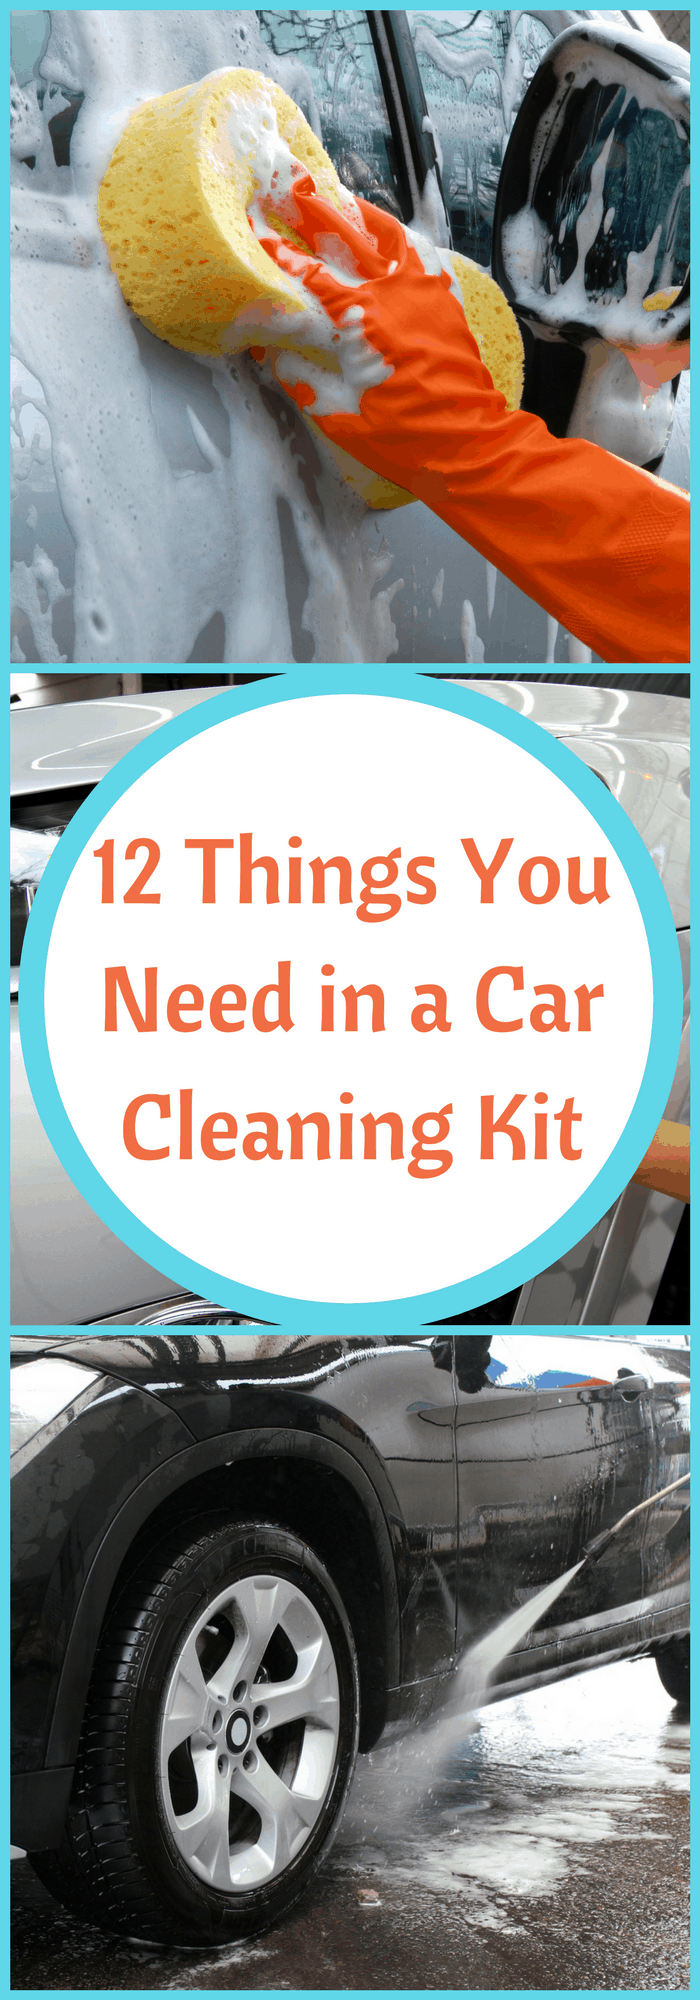 car cleaning kit